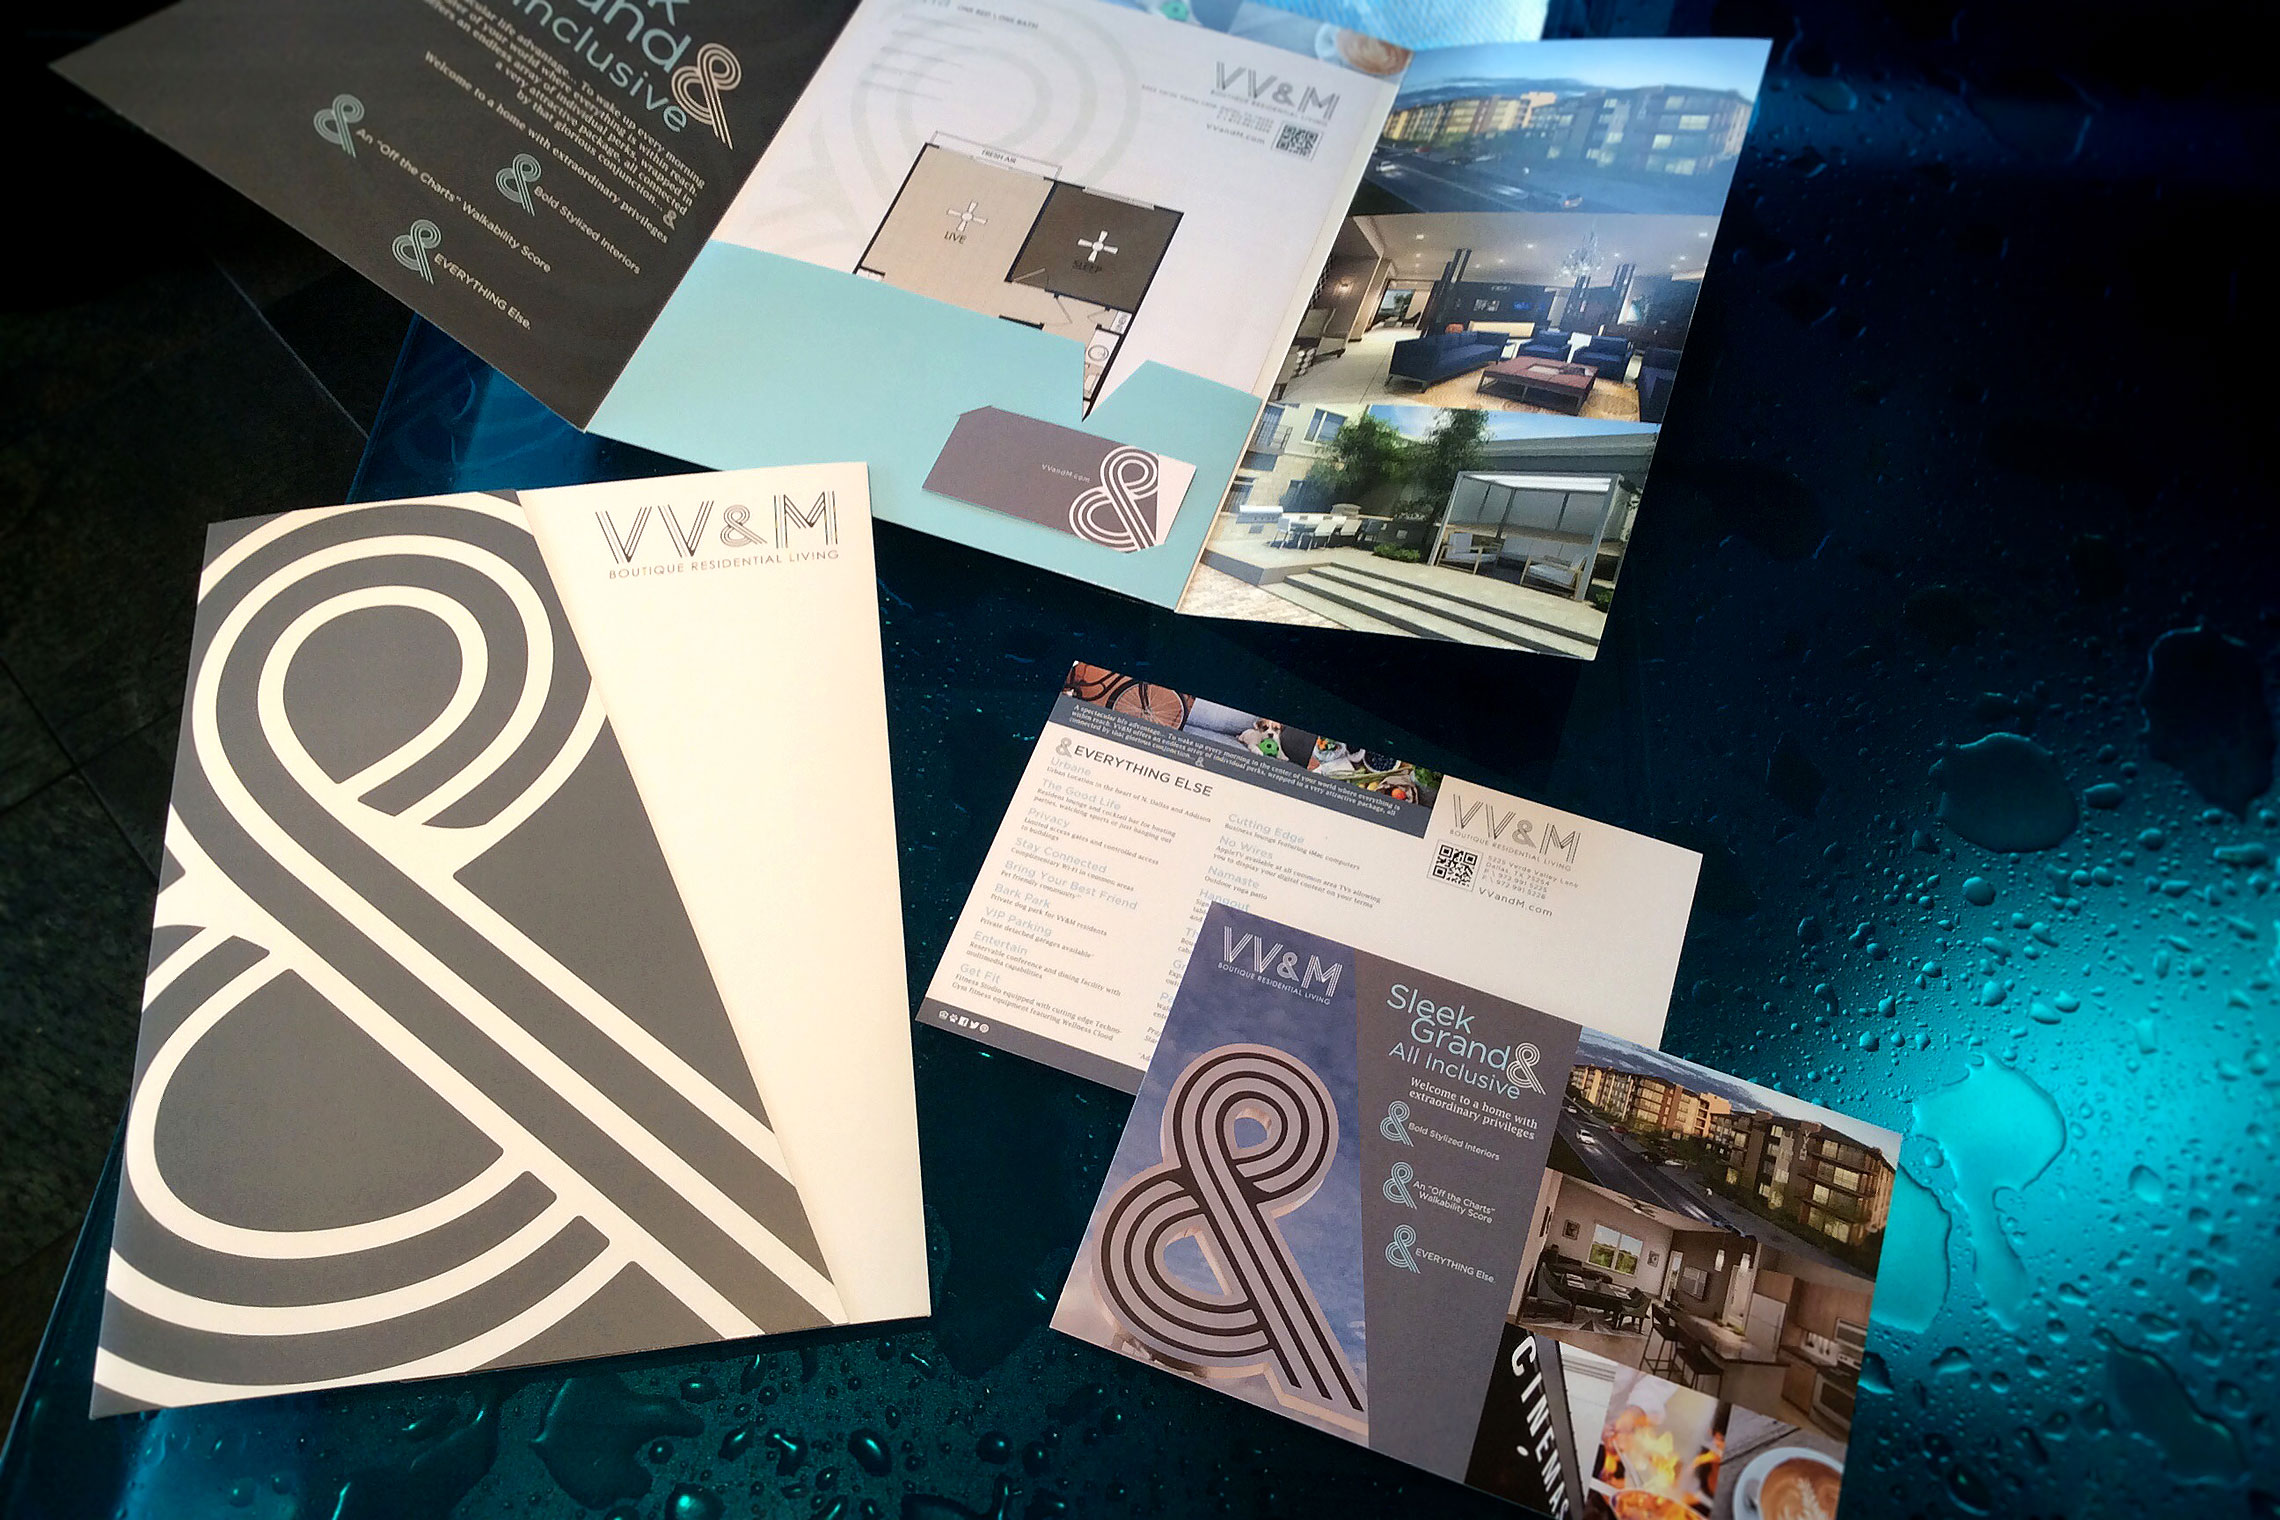 VV&M Boutique Residential Living Custom Collateral - Pocket Folder with Floor Plan Inserts, Thank You Note Card, Flyer, Postcard, Amenity Tri-Panel Brochure, Letterhead and Envelope